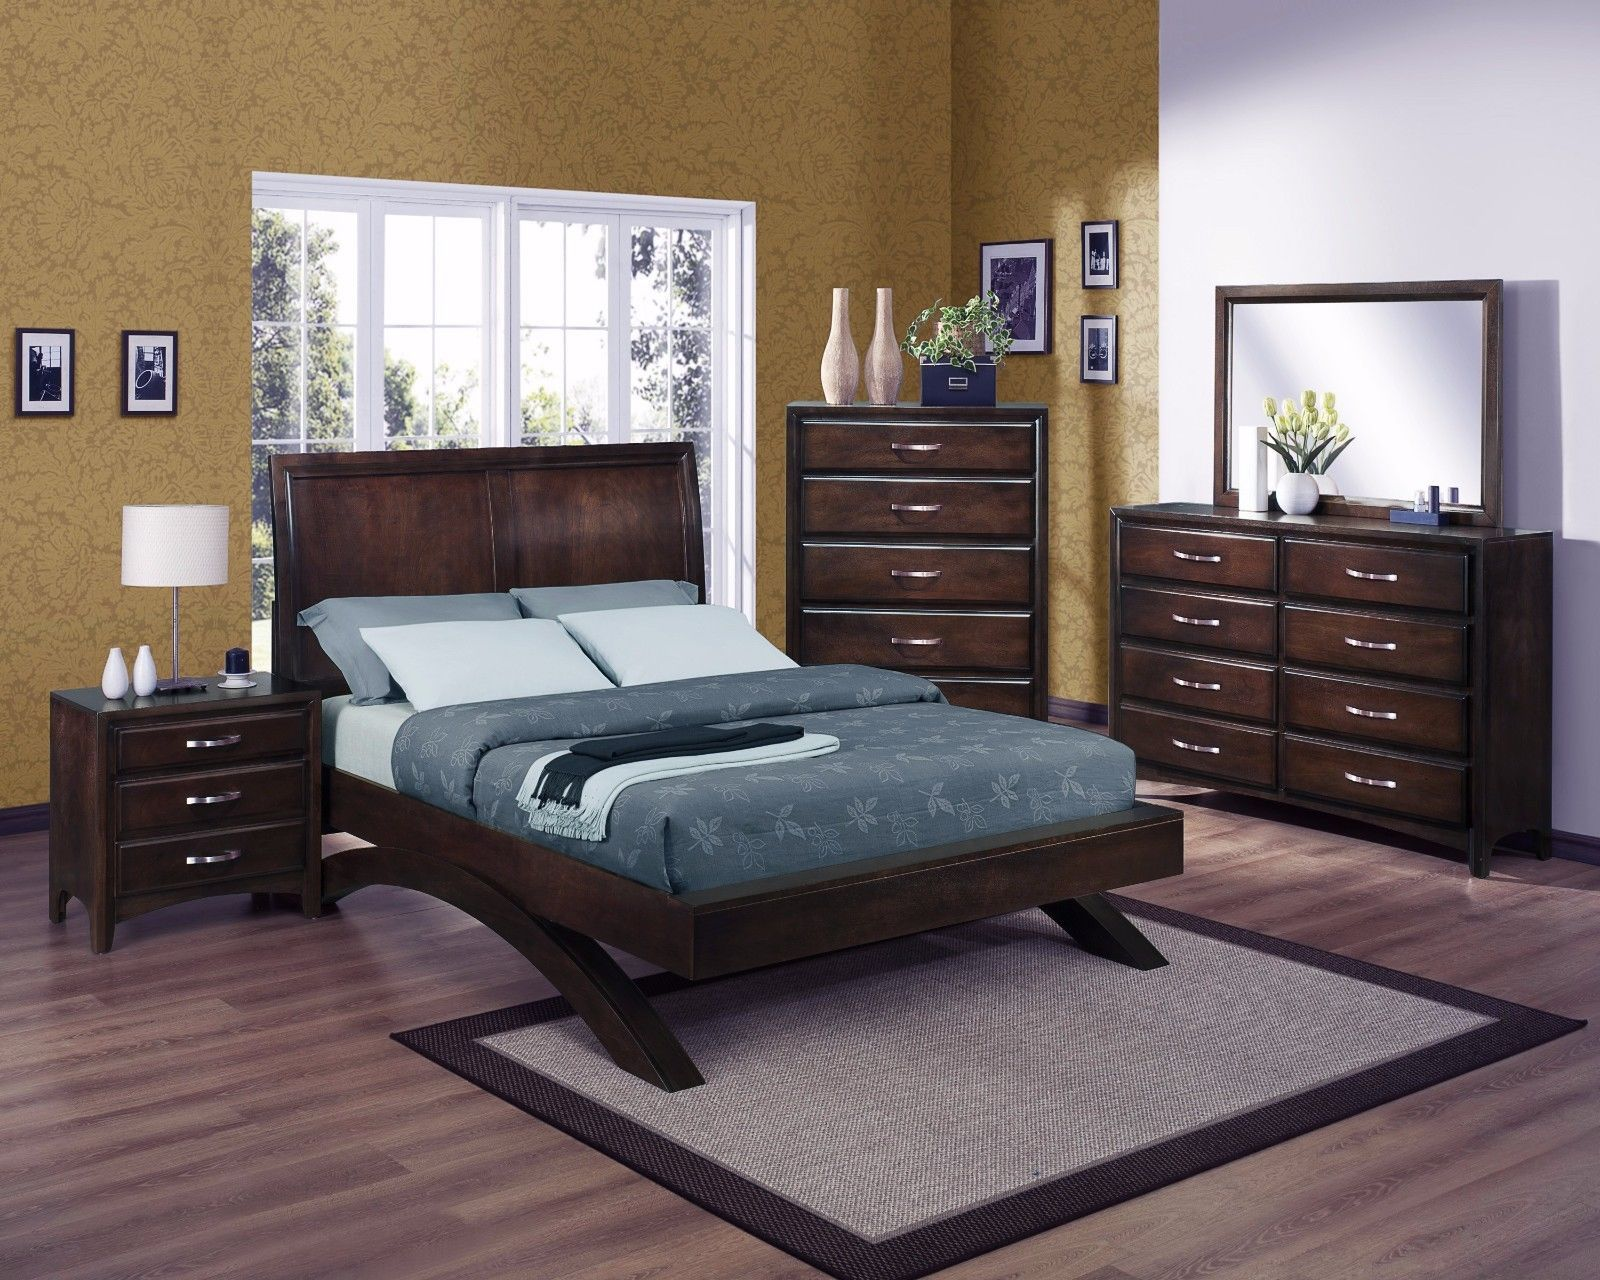 Crown Mark RB6150 Vera King Size Bedroom Set 5pc. Modern Transitional Style